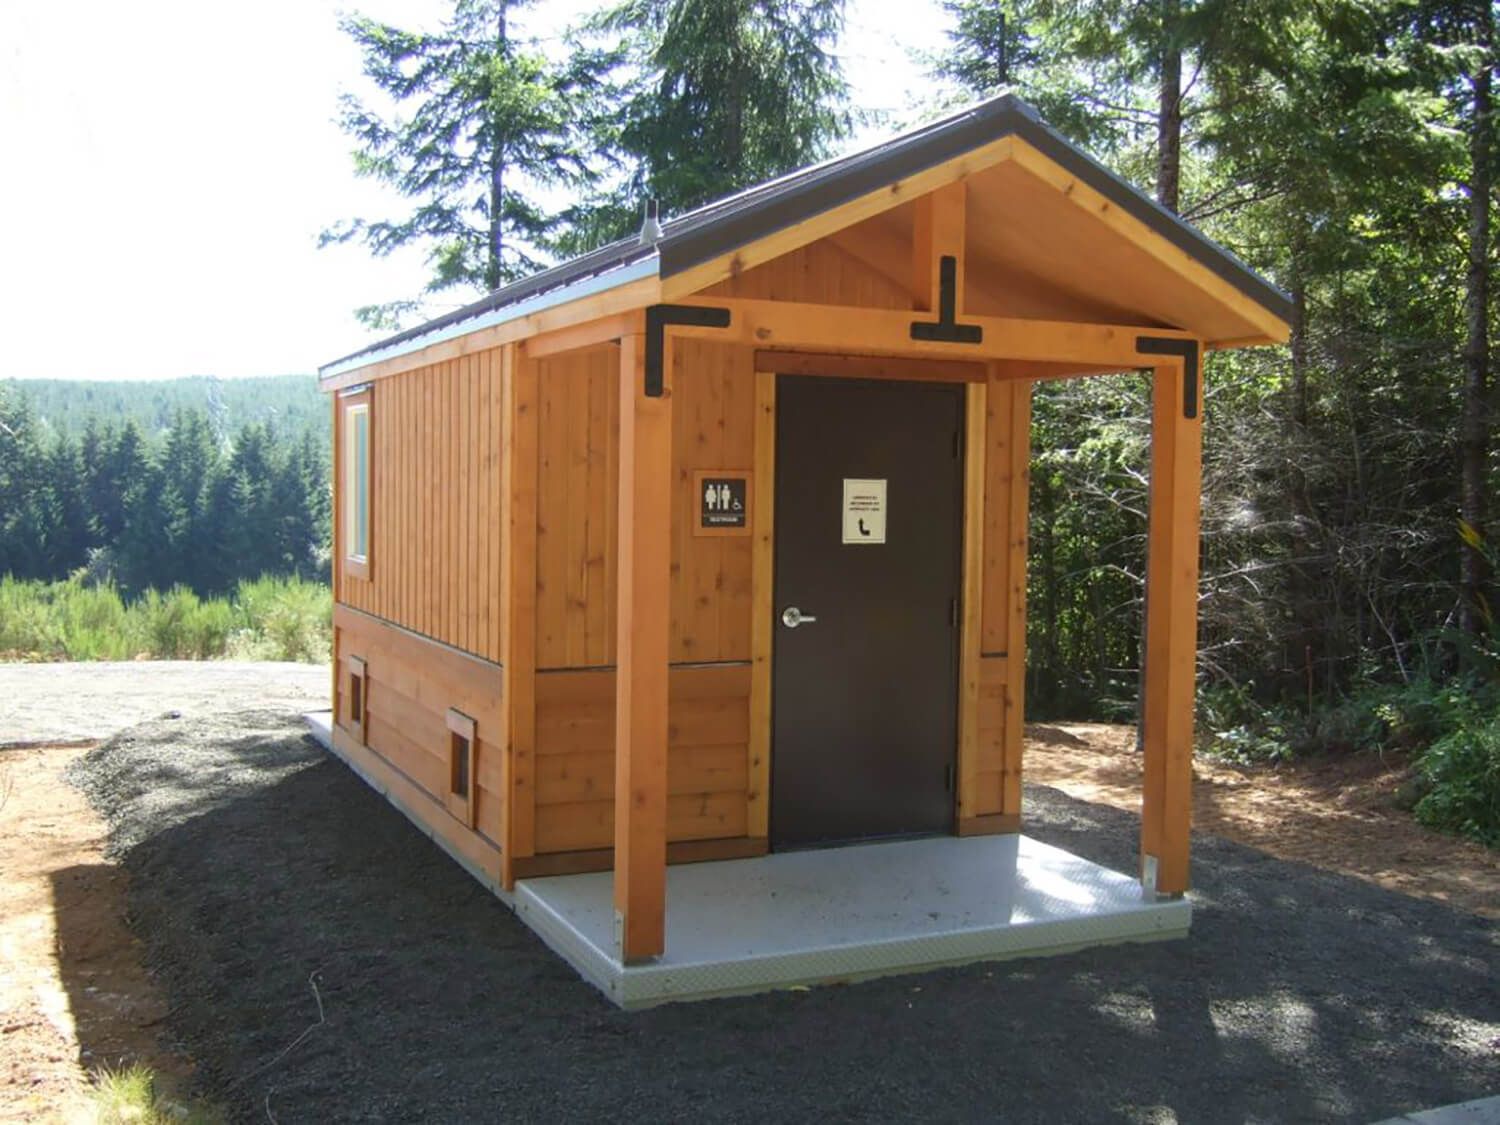 Salish Cliffs Restroom modular building